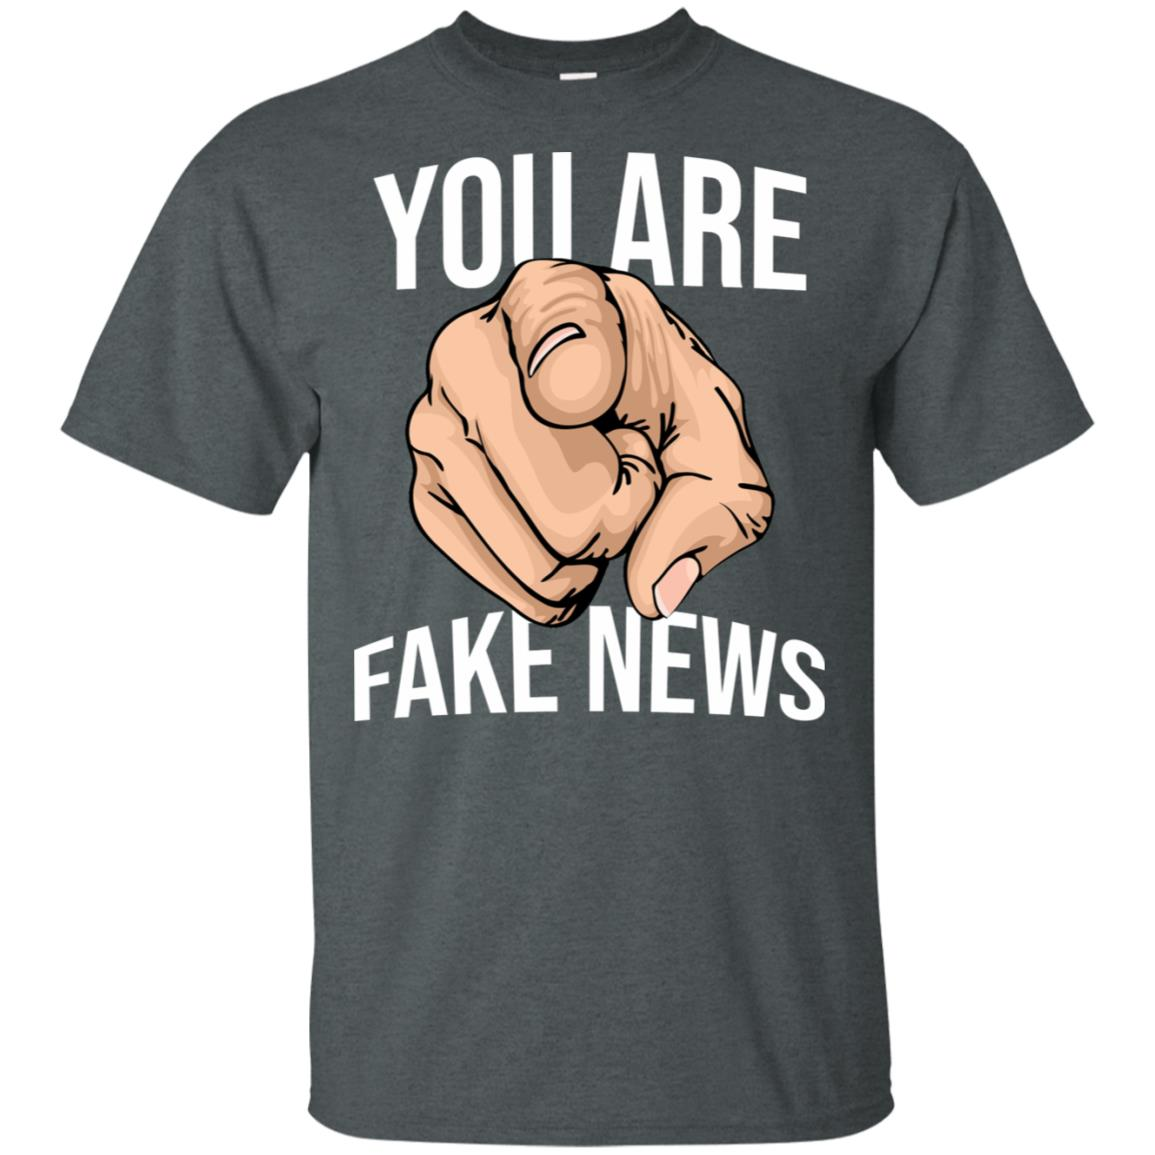 You Are Fake News, Funny Fake News Network-1 Unisex Short Sleeve